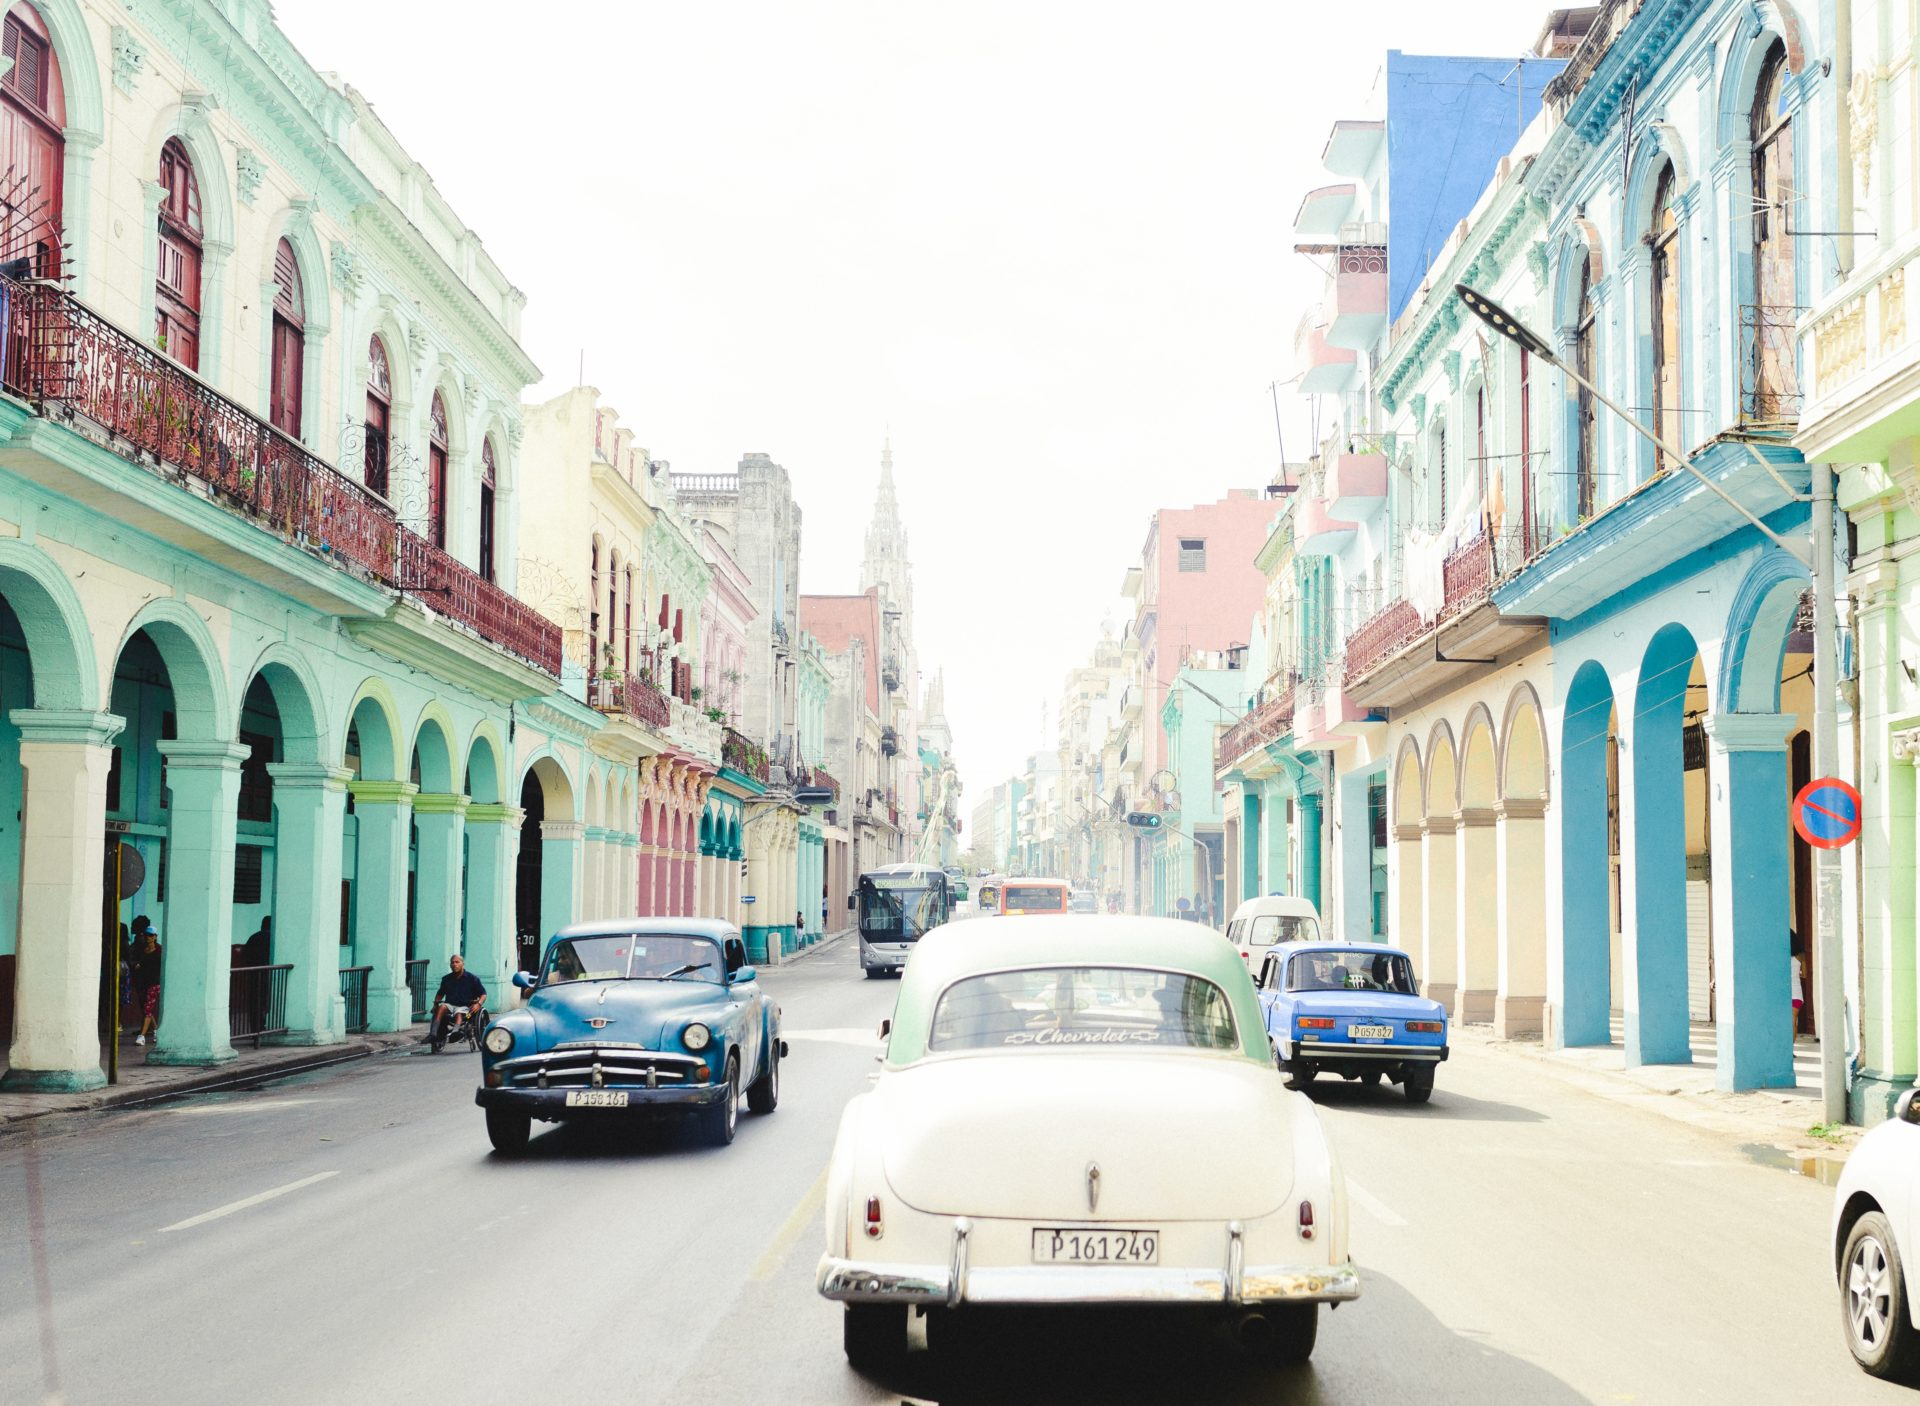 cuba street with classic cars and colorful buildings